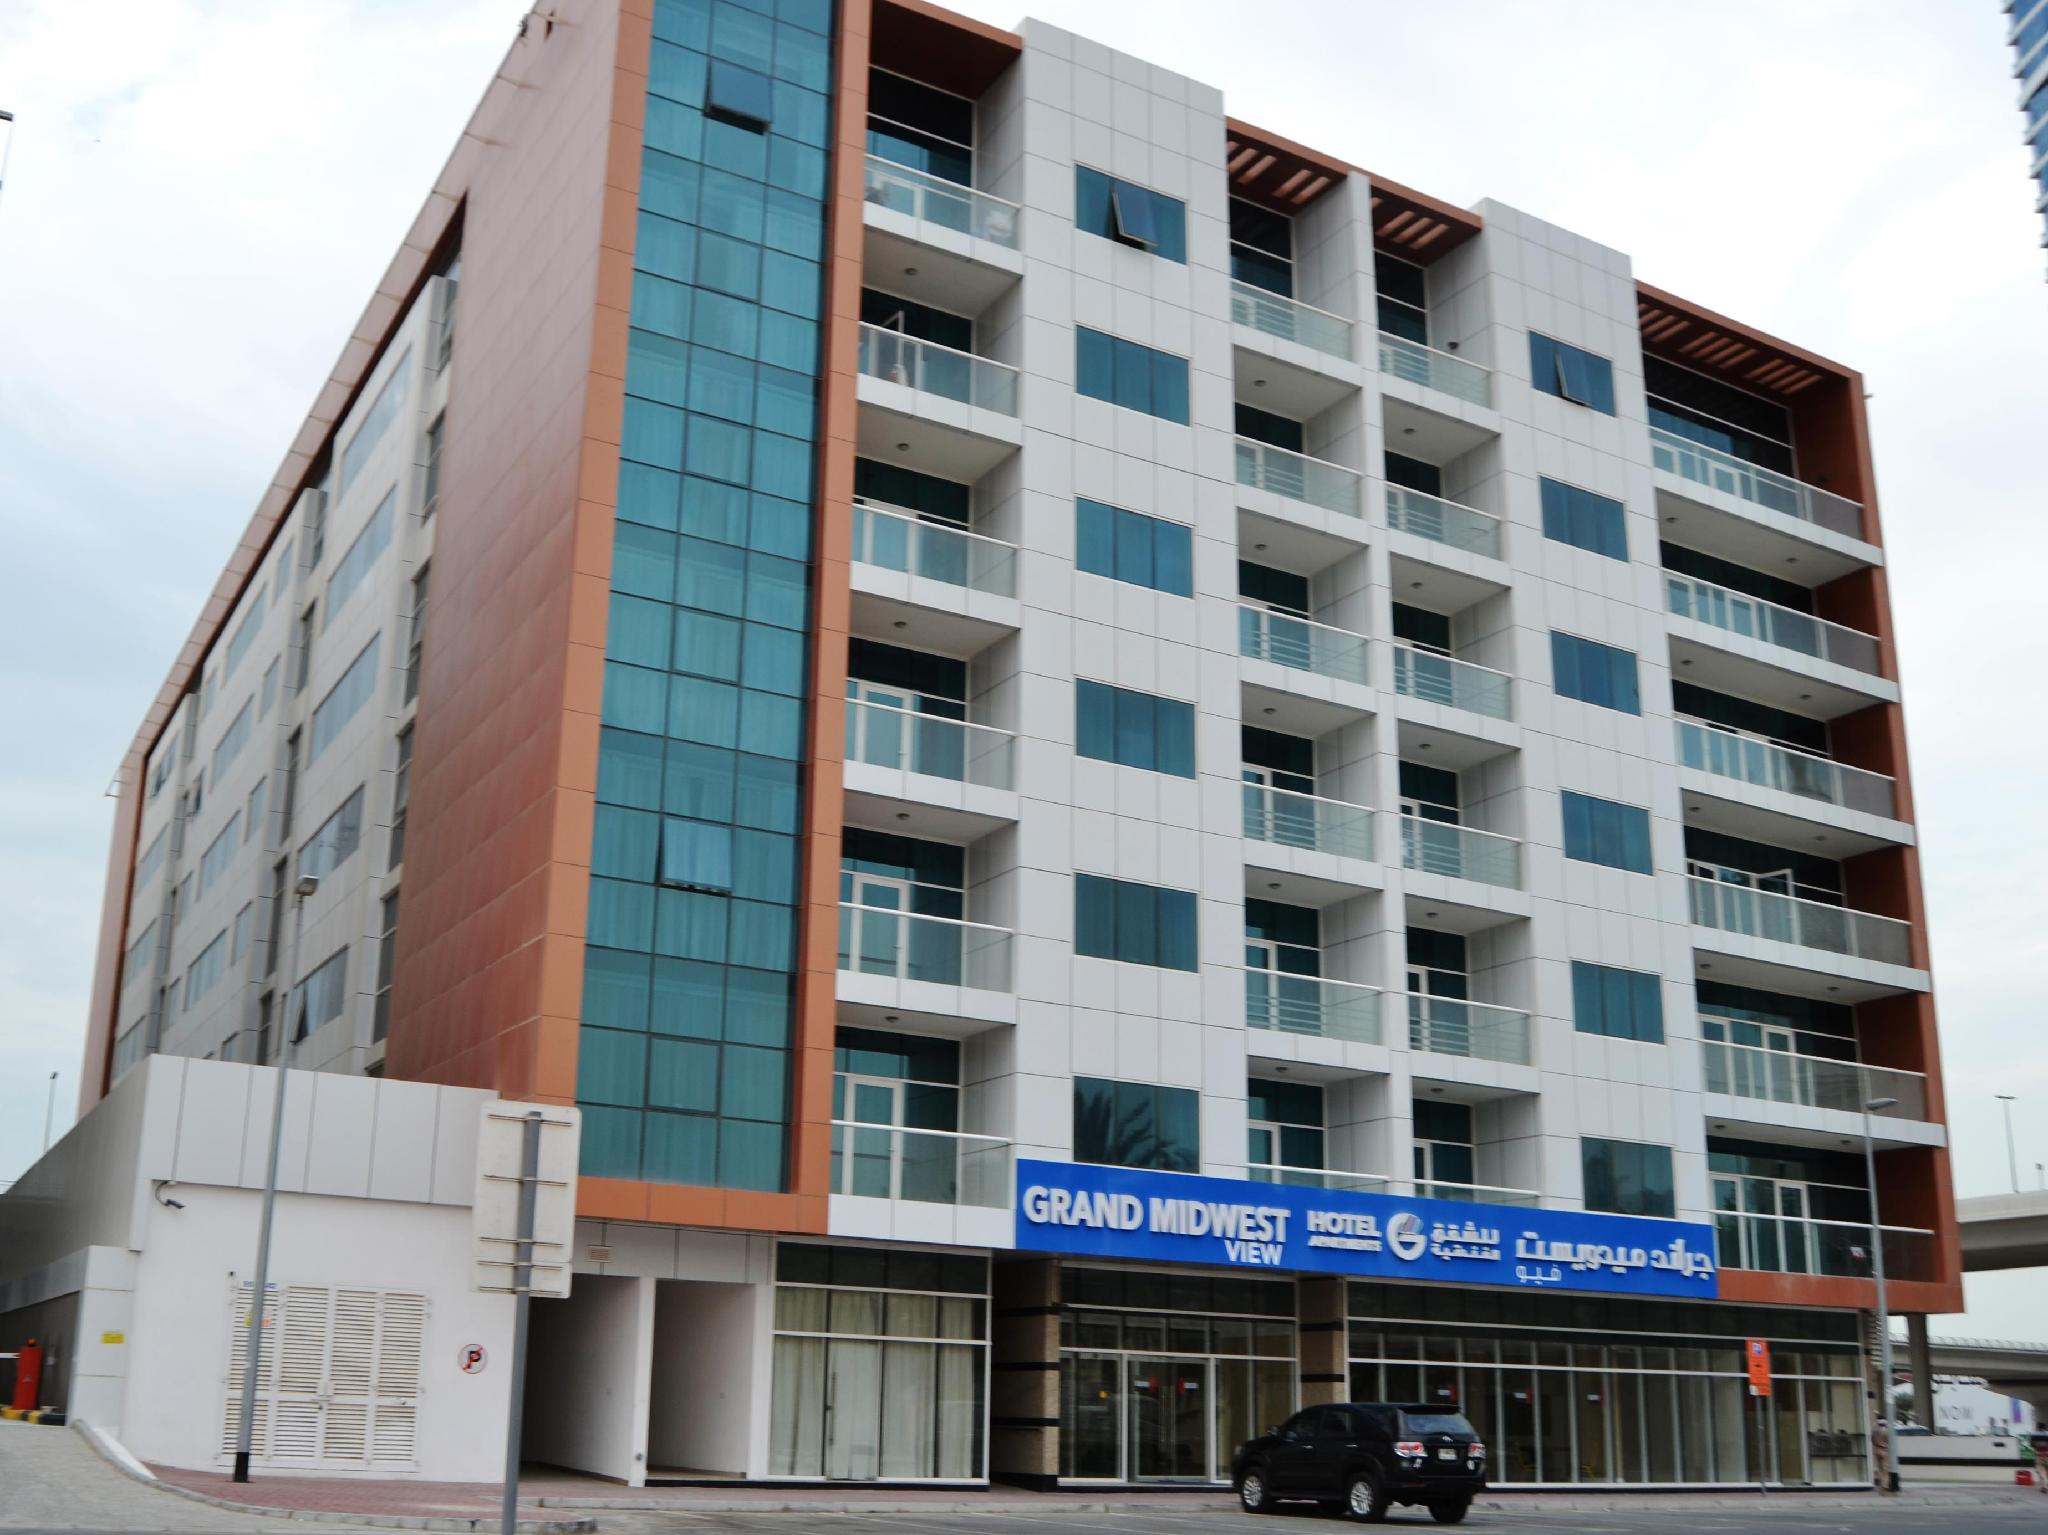 Grand Midwest View Hotel Apartments - Hotels and Accommodation in United Arab Emirates, Middle East